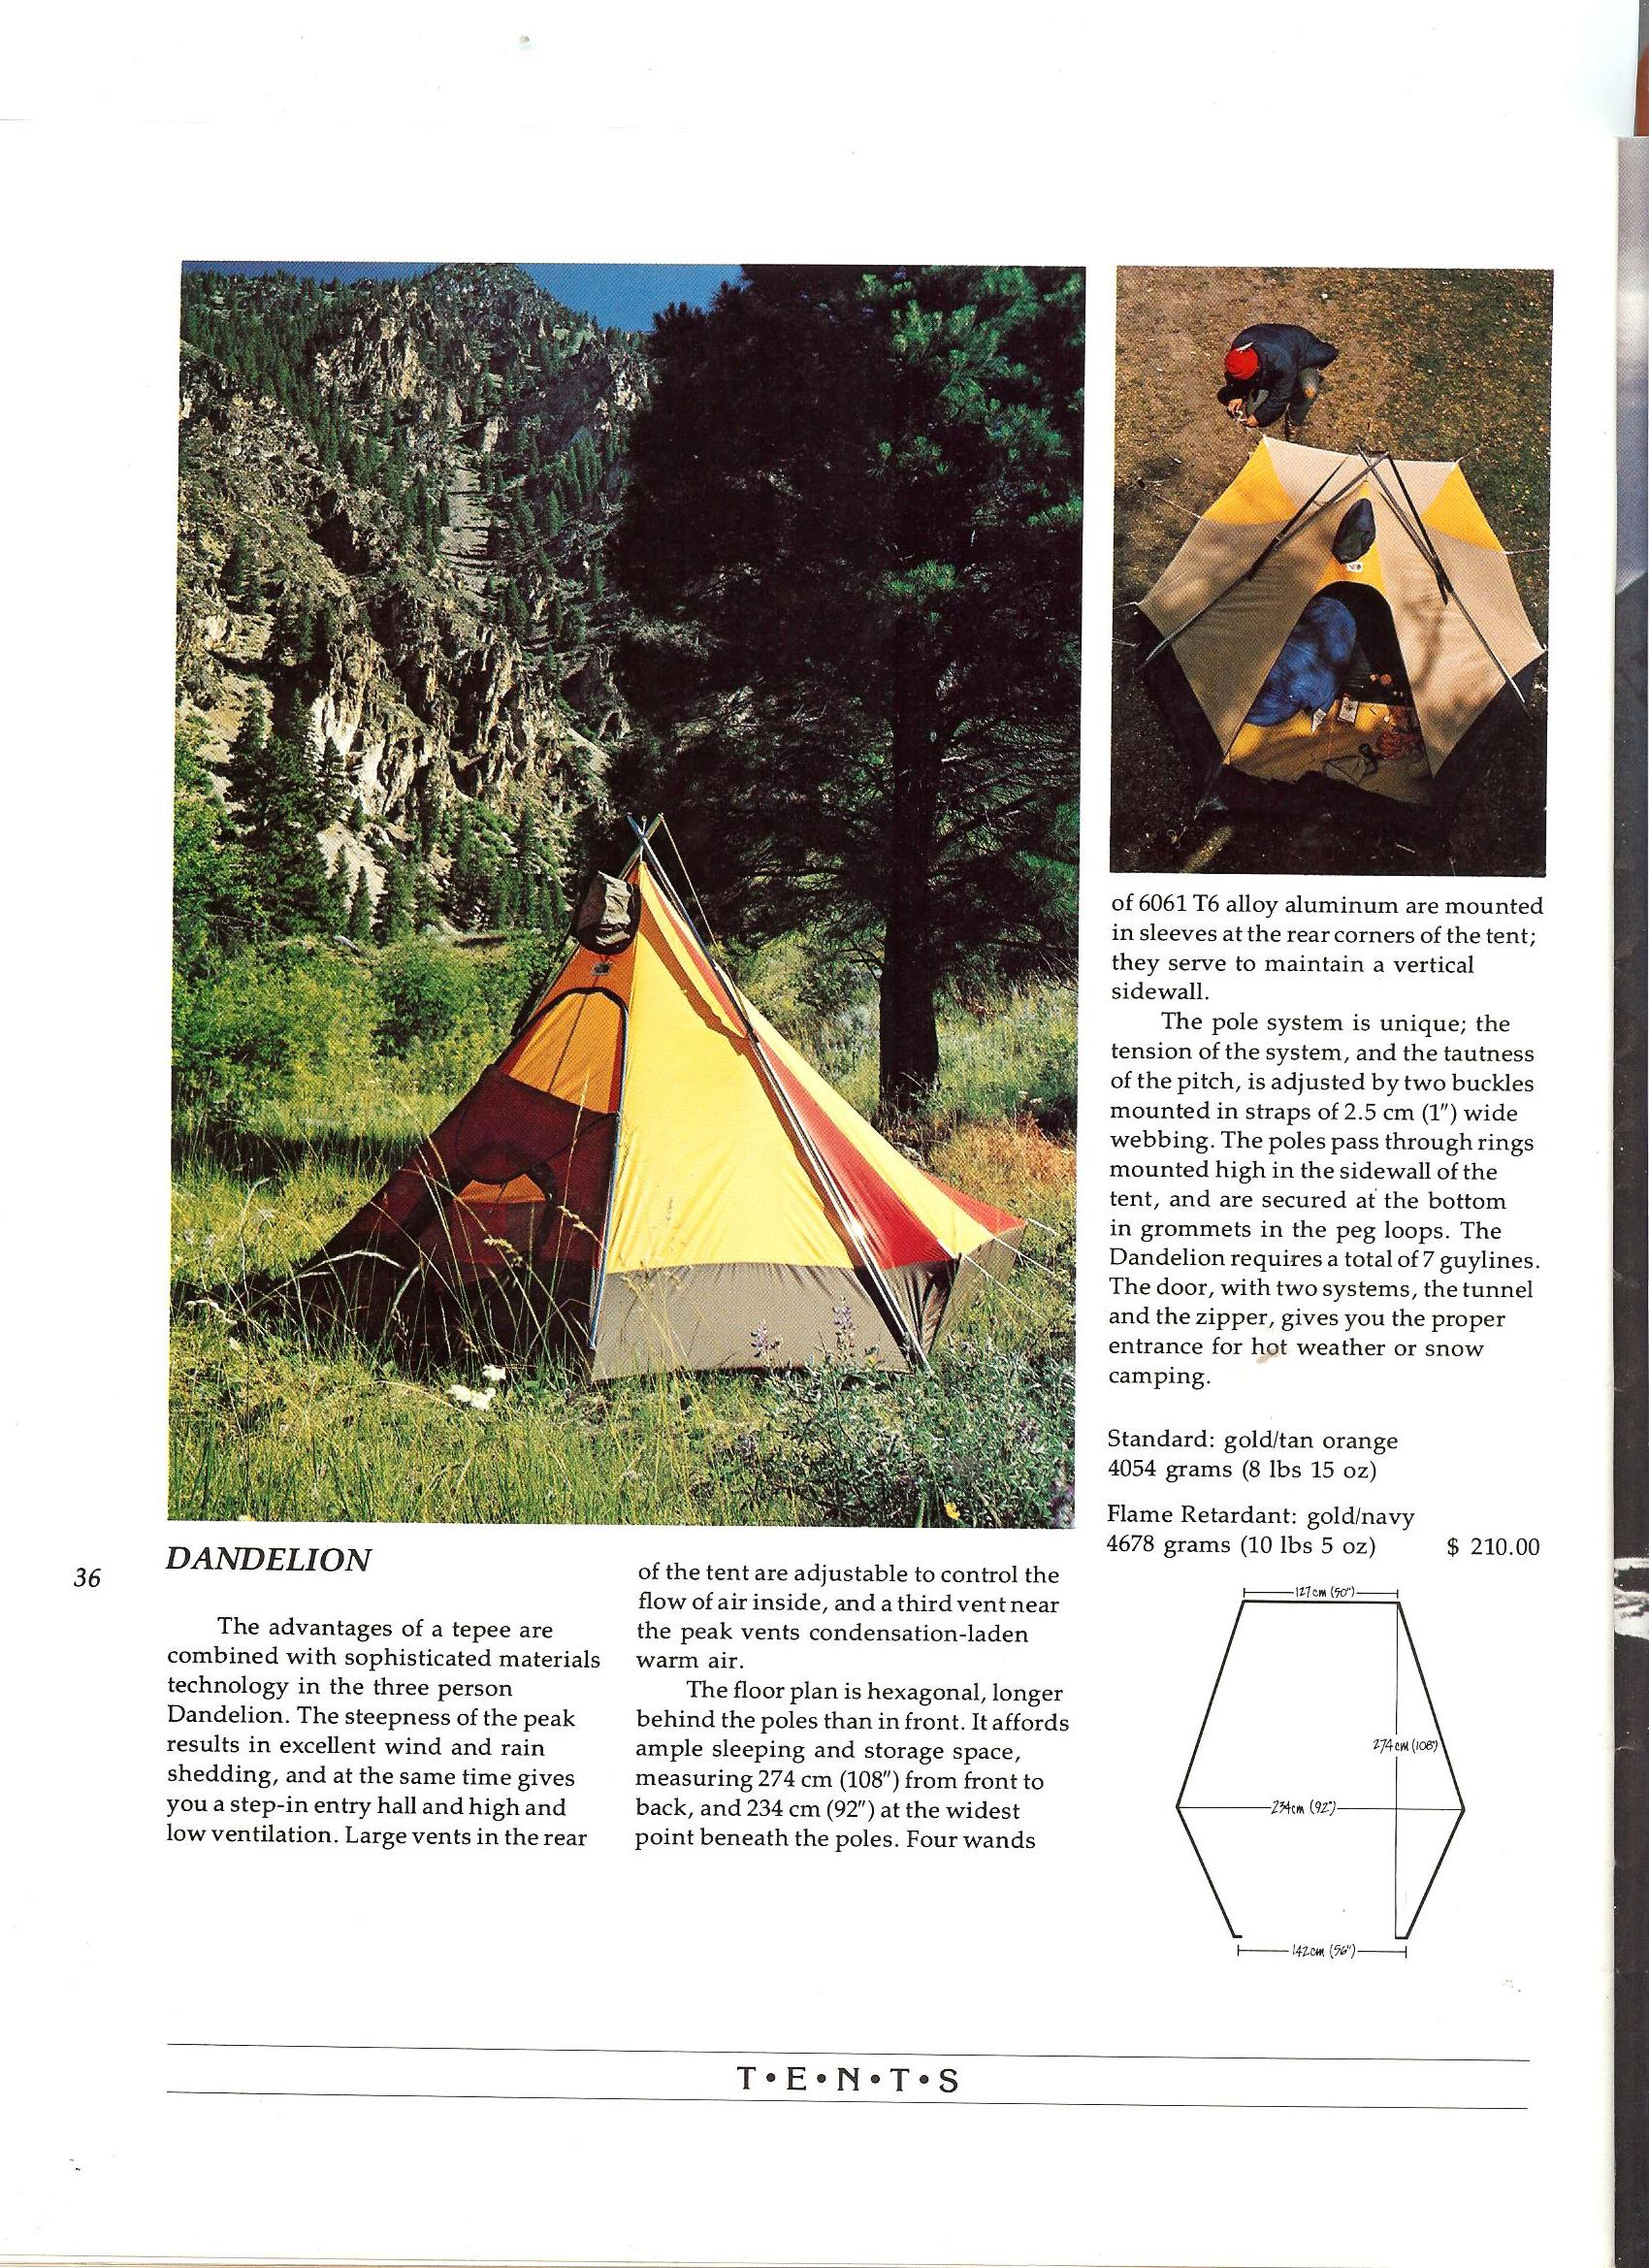 The North Face 1975 Catalog - Dandelion Tent